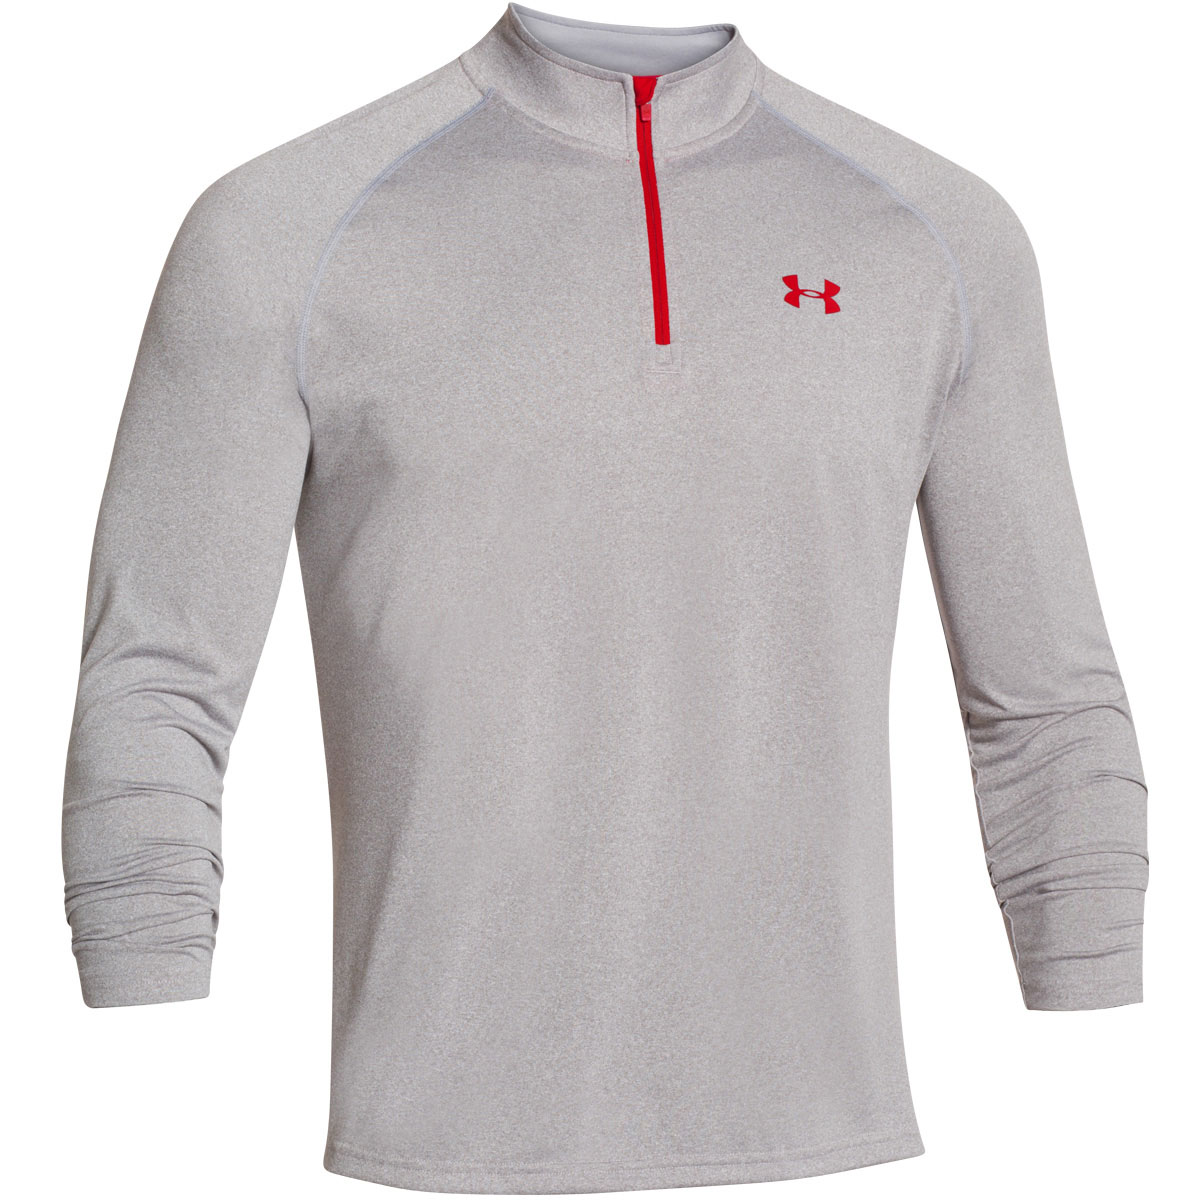 Under armour 2017 mens ua tech 1 4 zip long sleeve top gym for Under armor business shirts